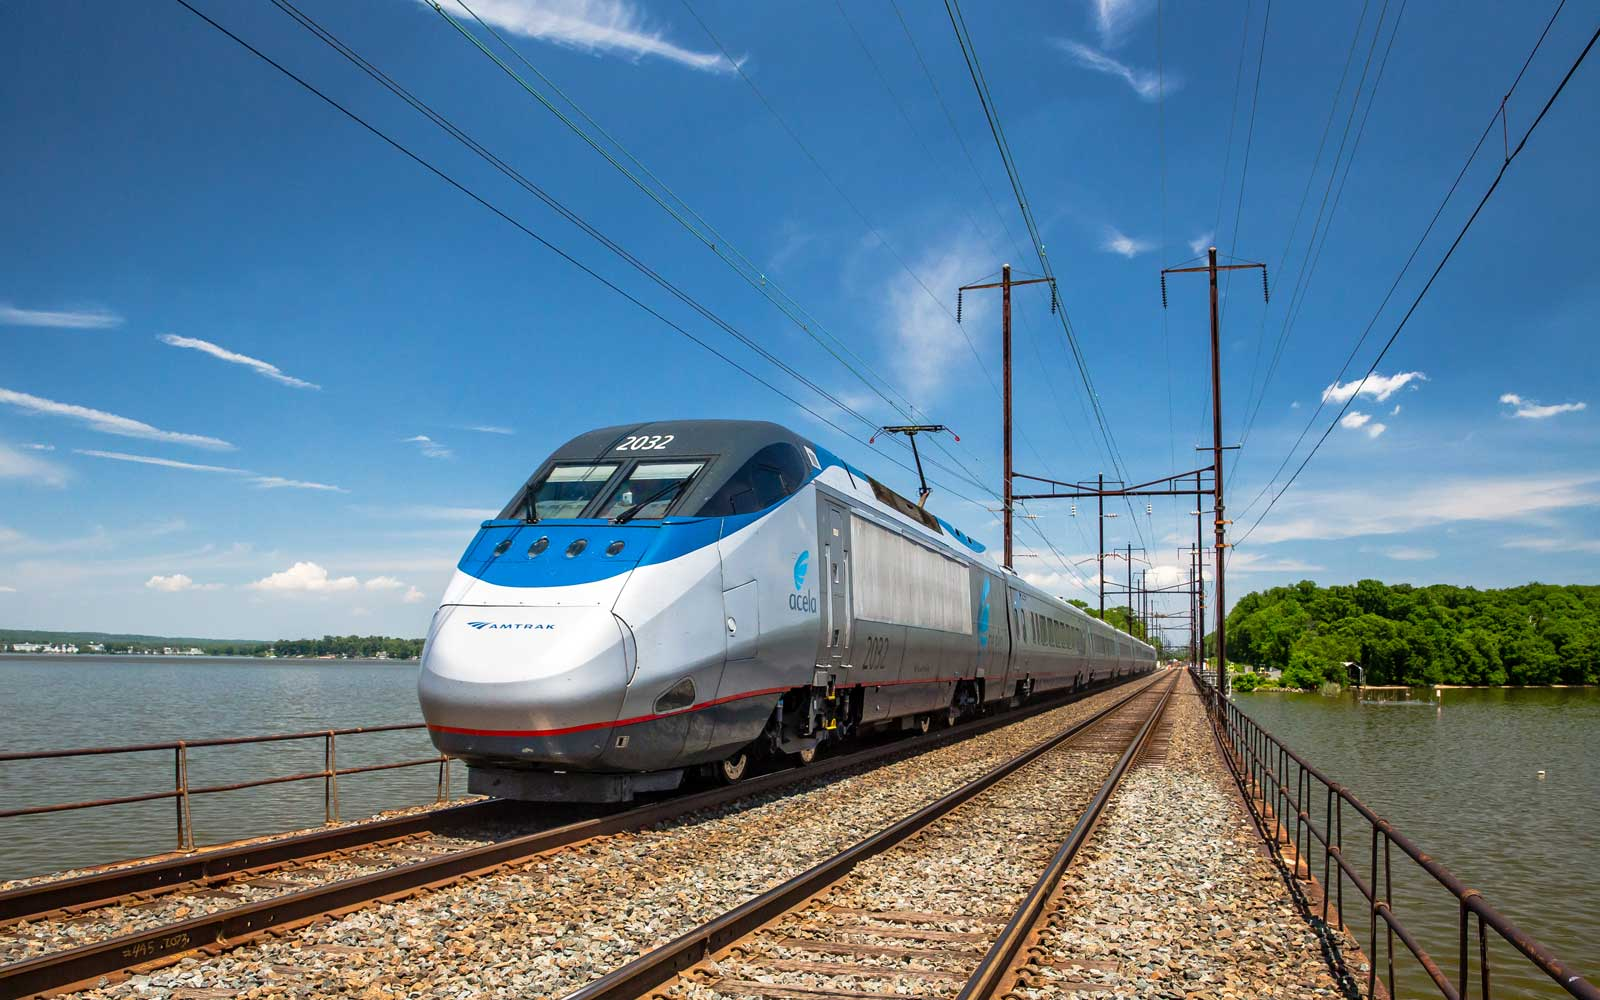 Snag Two Tickets For the Price of One With Amtrak's New Summer Sale